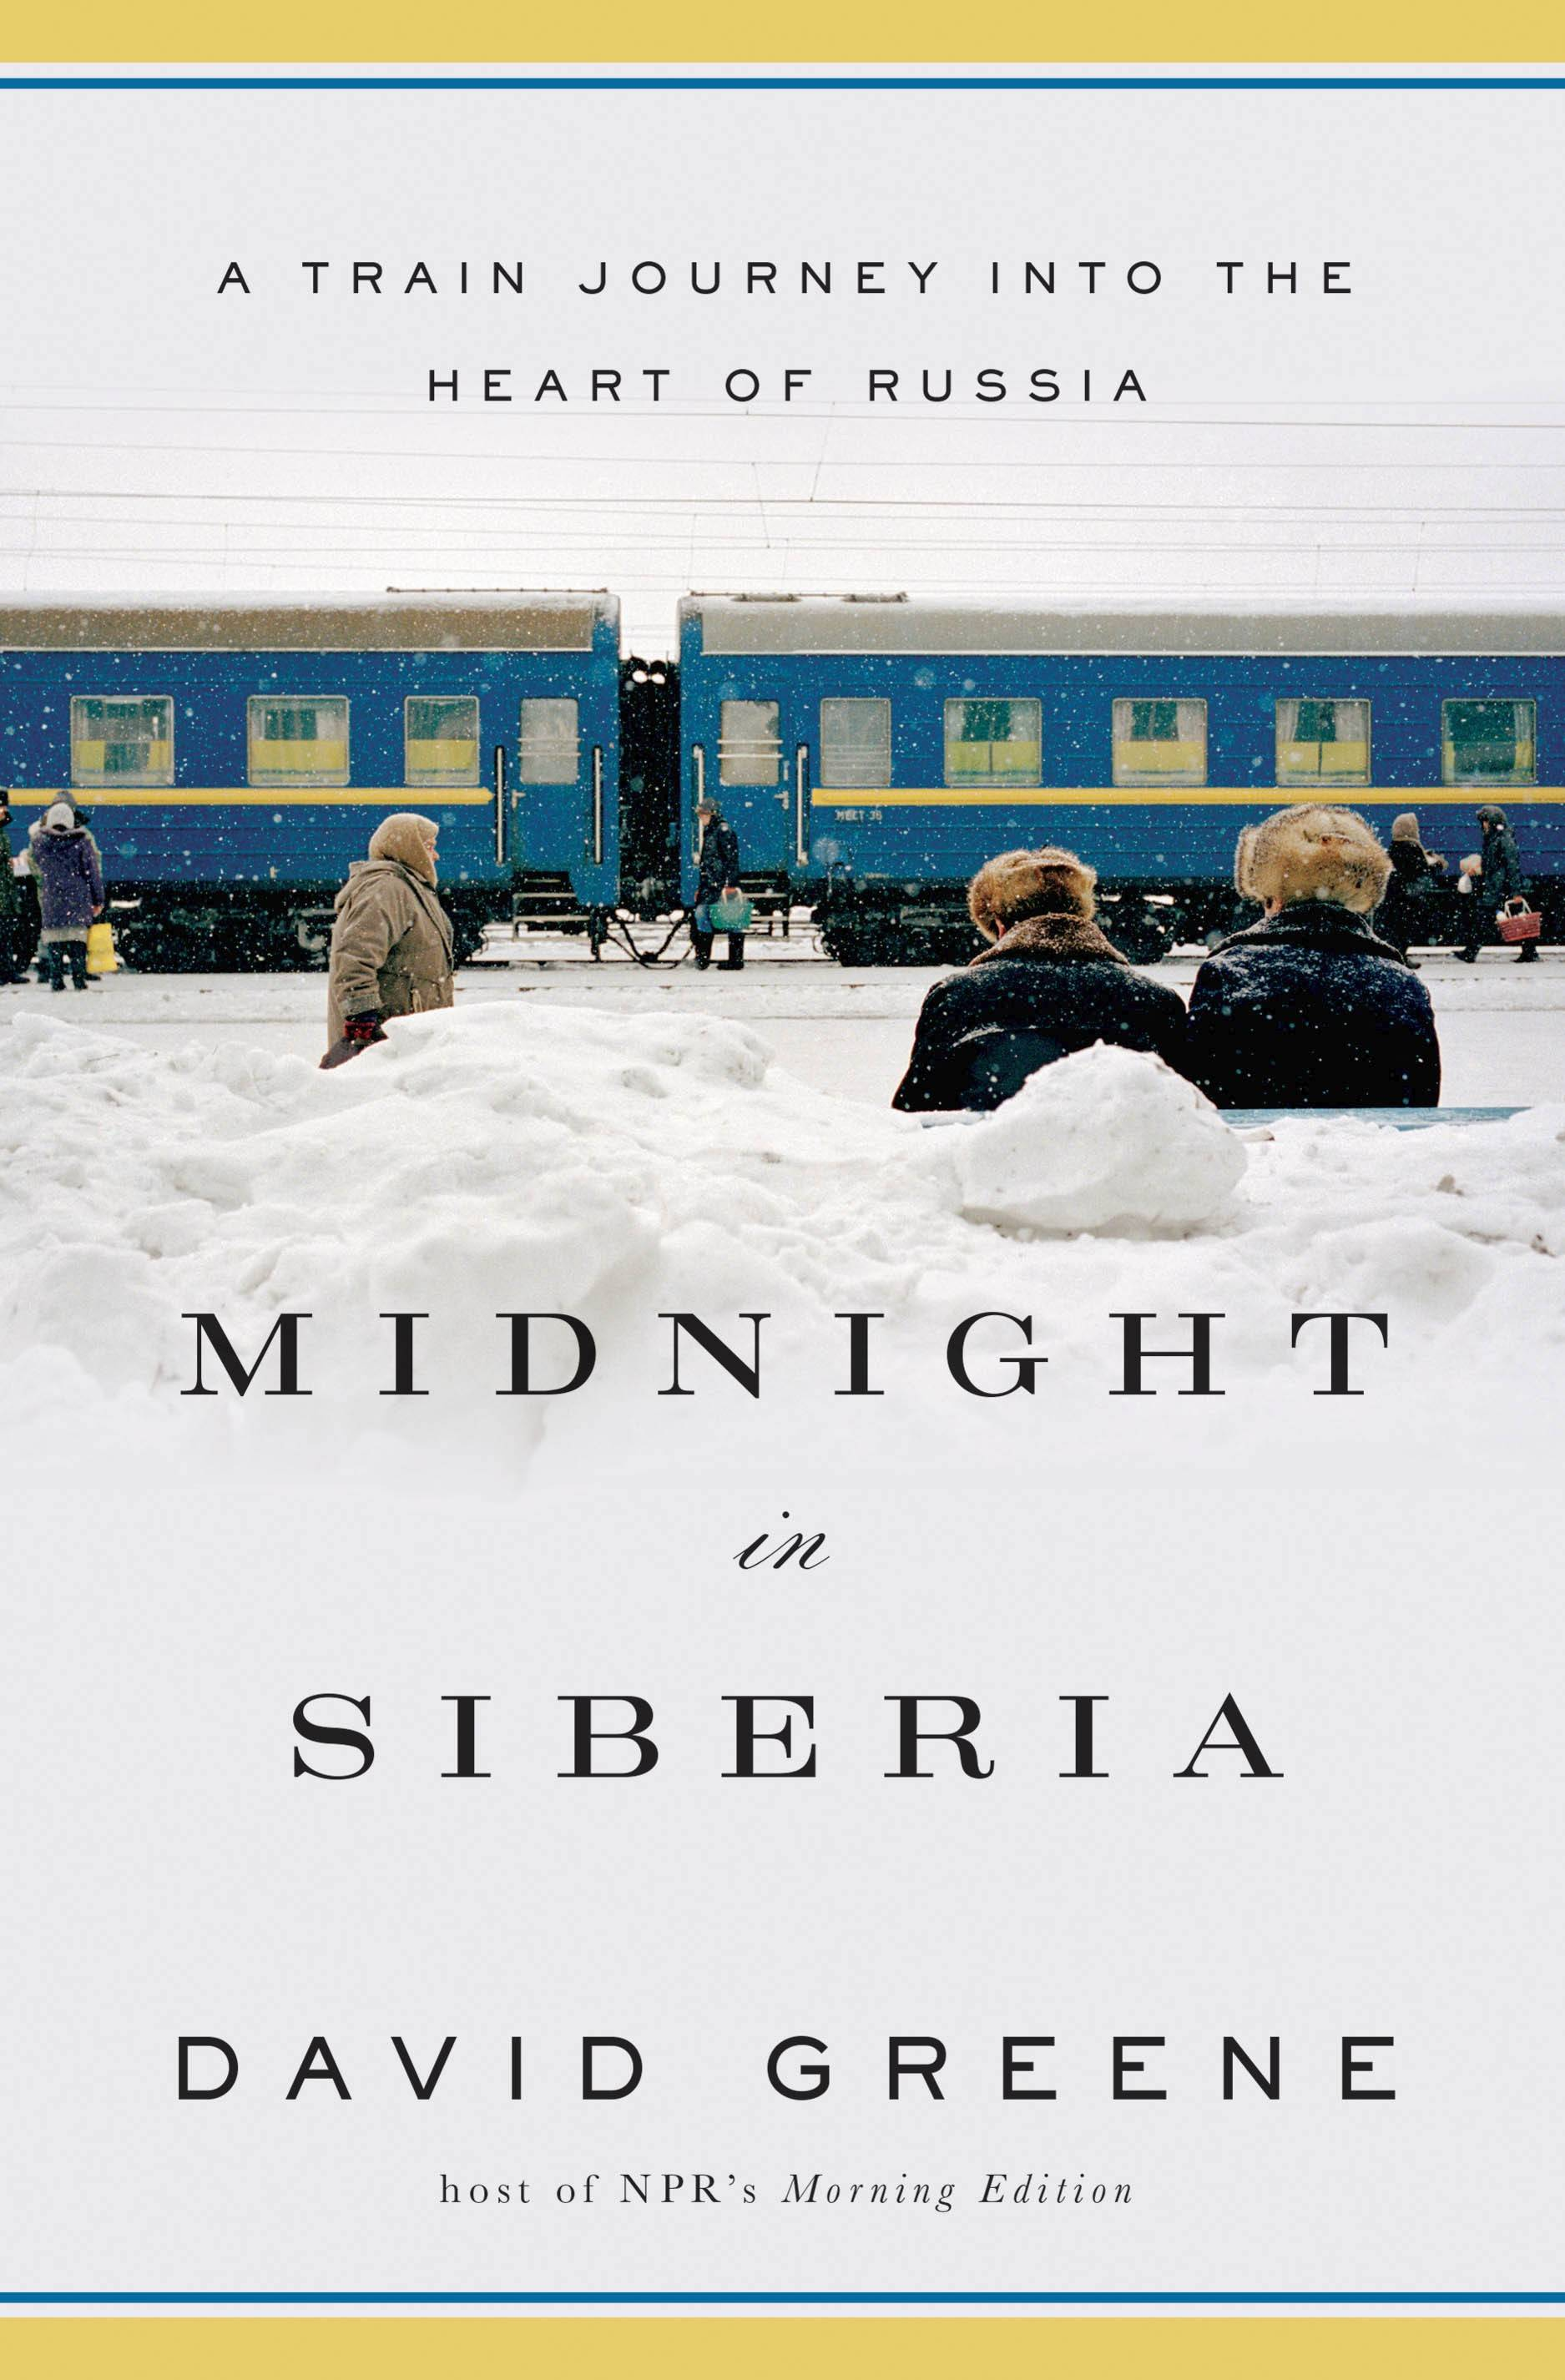 """Midnight in Siberia: A Train Journey Into the Heart of Russia"" by David Greene"